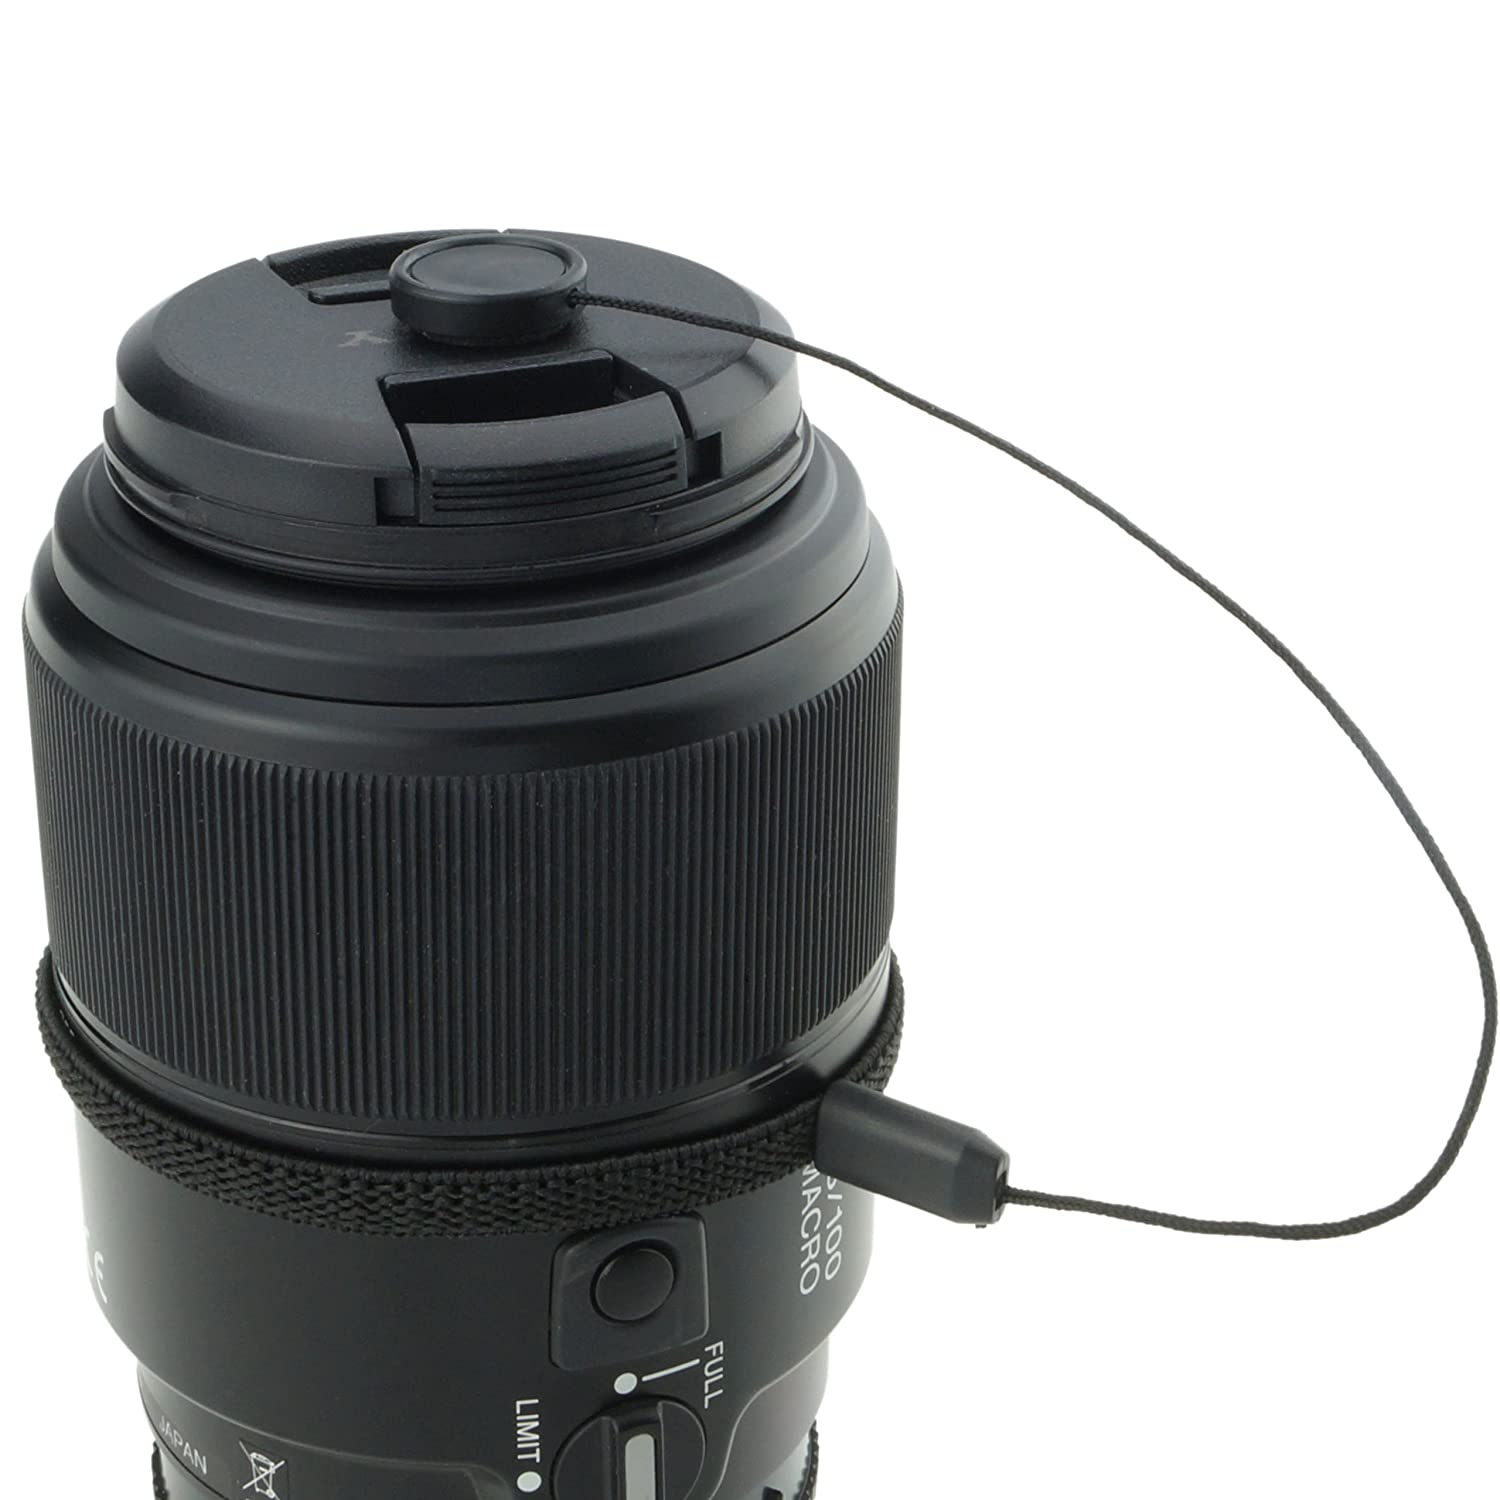 gifts for photographers under 10 dollars lens cap holder